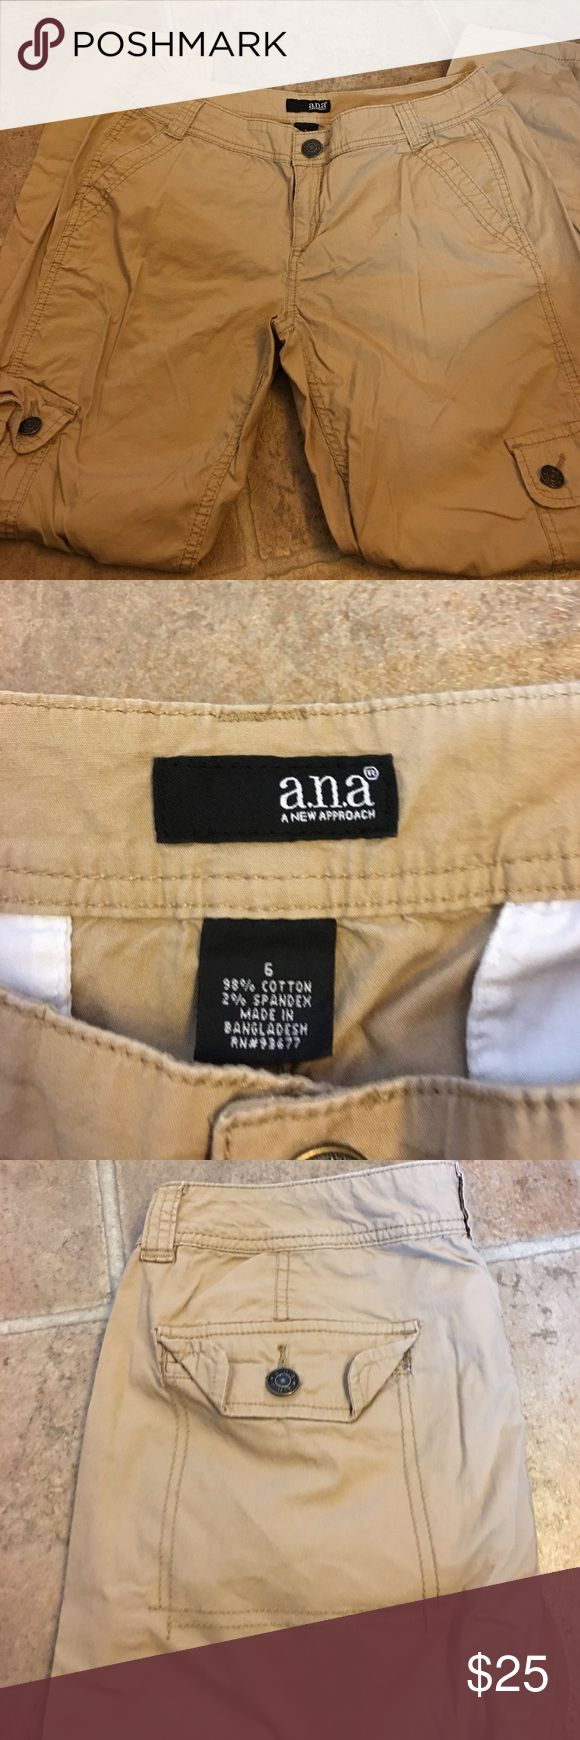 Tan ladies cargo thin pants. Like new! Tan ladies cargo pants. Like new! Only wore once. Size 6 women's.  Has side pockets on legs and front and back pockets. a.n.a Pants Straight Leg